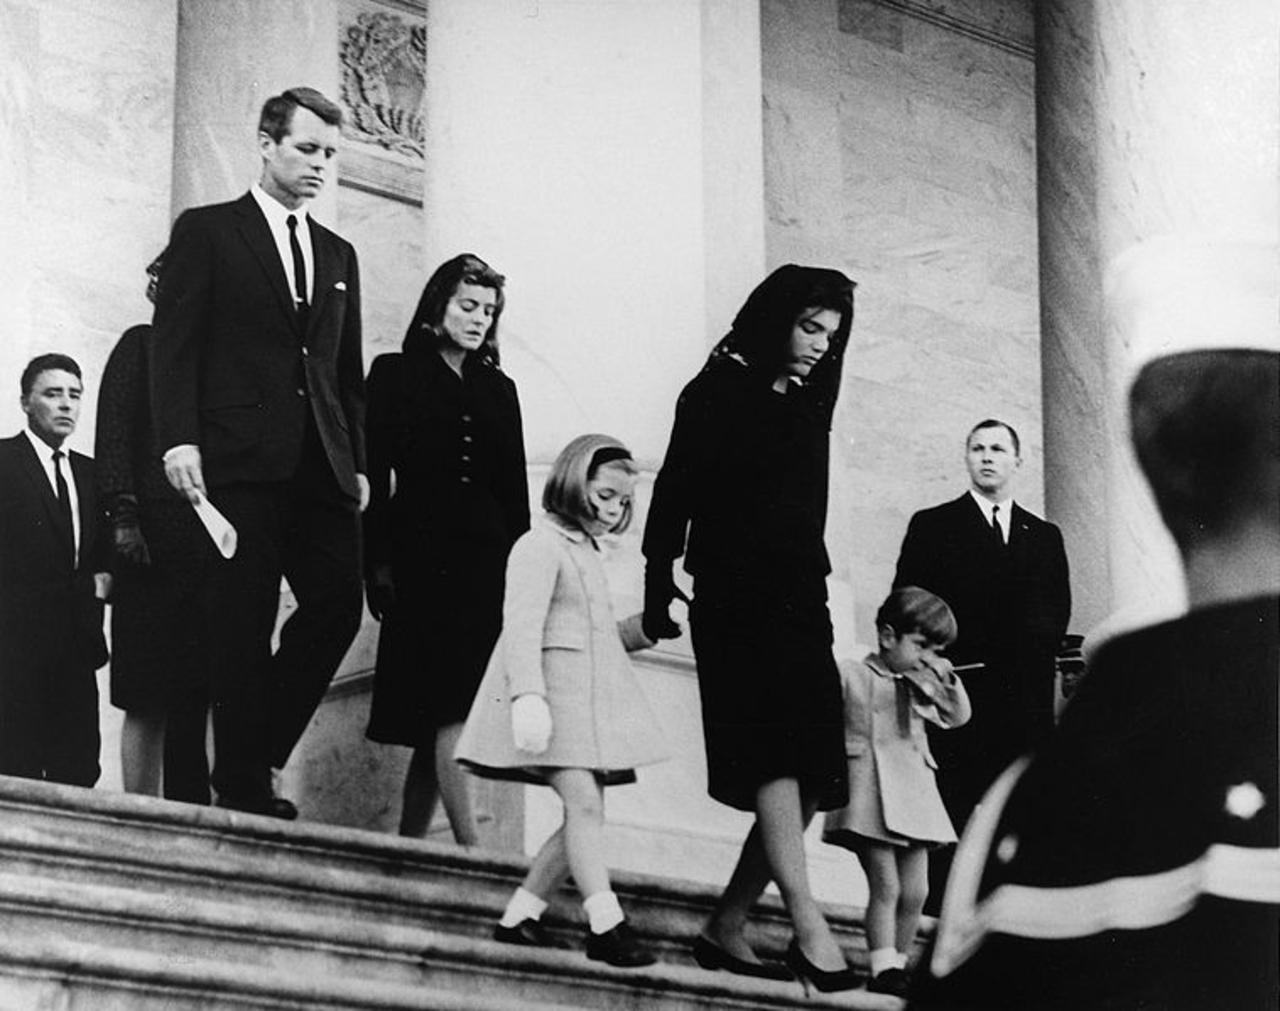 Jackie Kennedy, her children,and Robert F. Kennedy  leave the U.S. Capitol after John F. Kennedy's funeral on November 25, 1963. (Photo: Abbie Rowe White House Photographs)